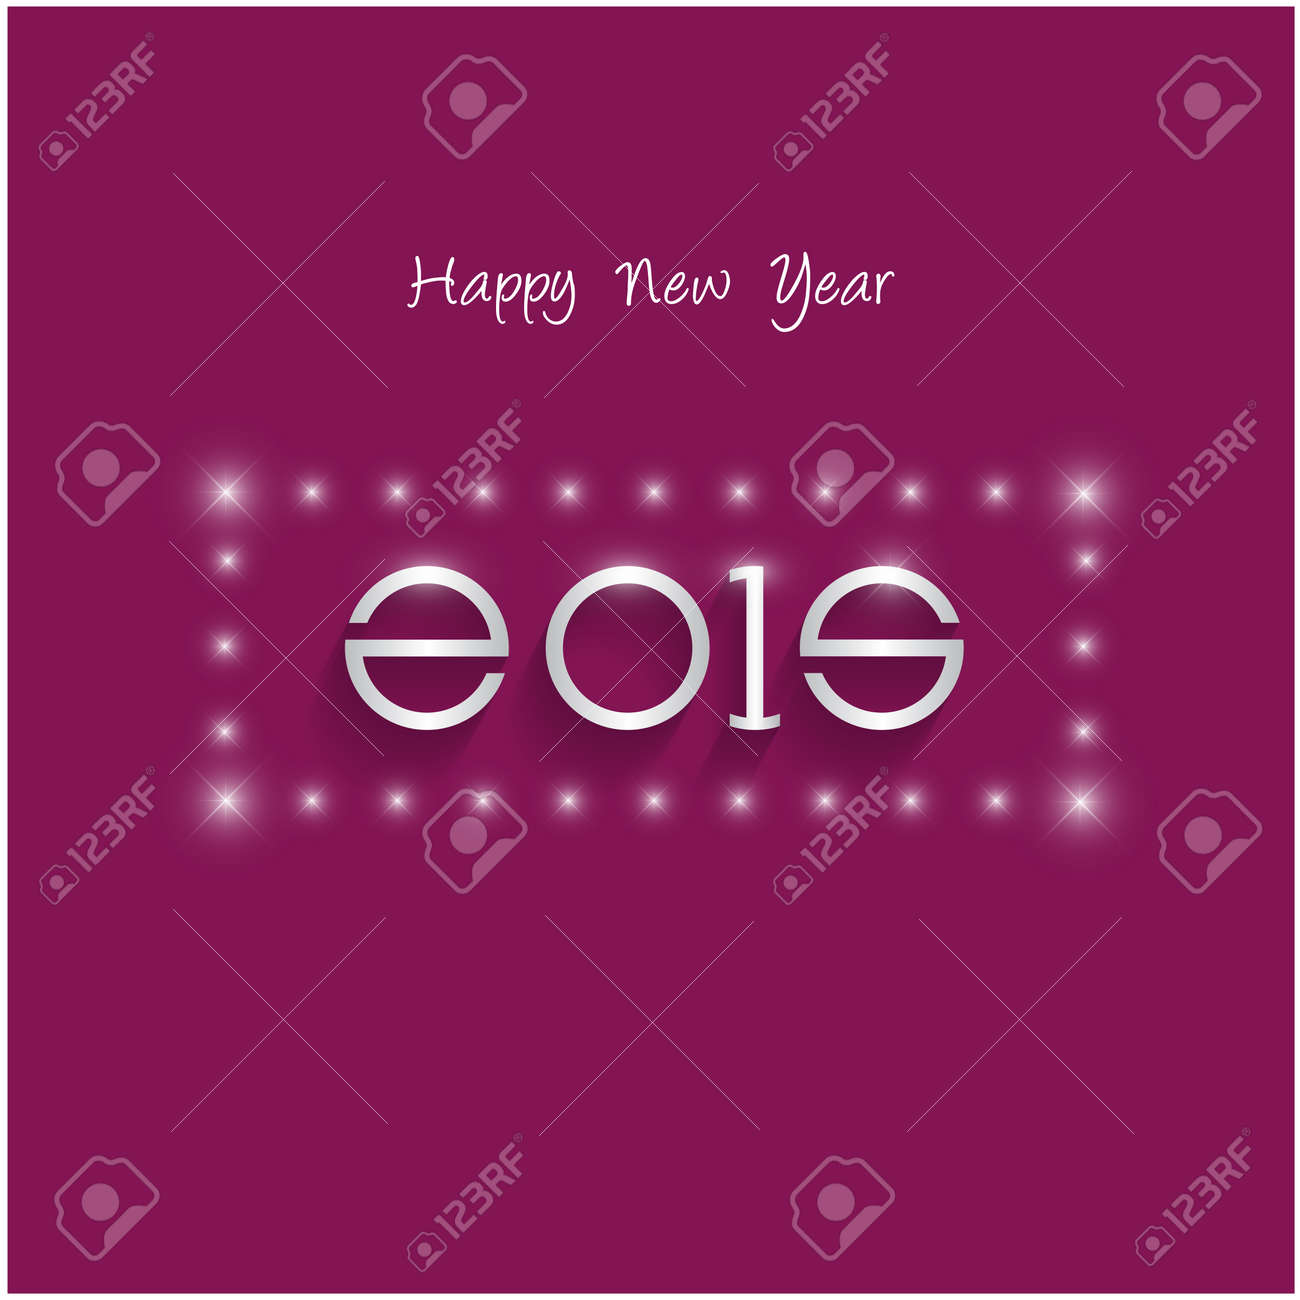 Happy New Year 2015 Creative Greeting Card Design In Flat Style